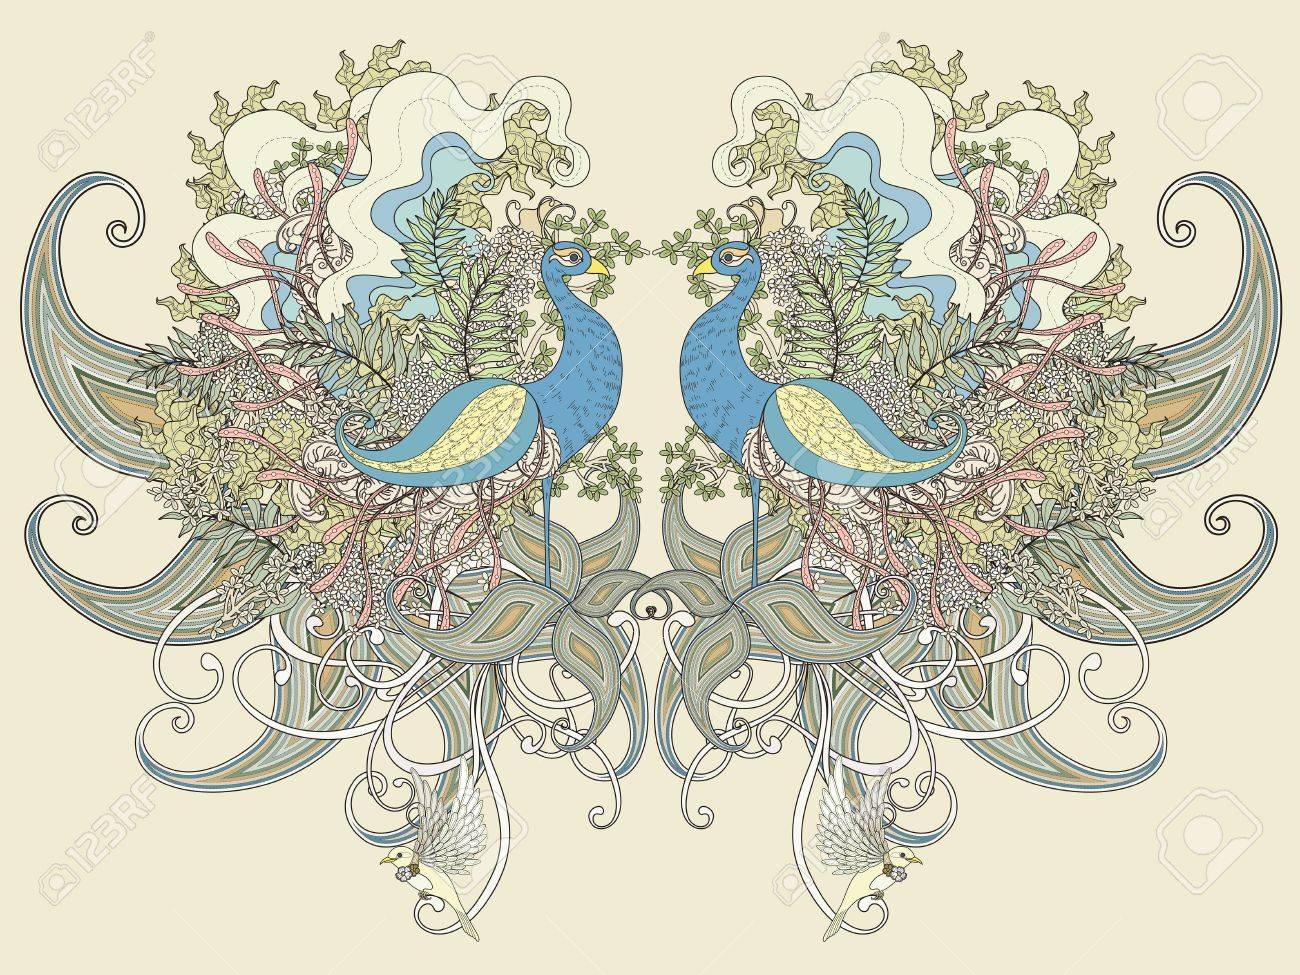 Beautiful Peacock Coloring Page With Floral Elements In Exquisite ...